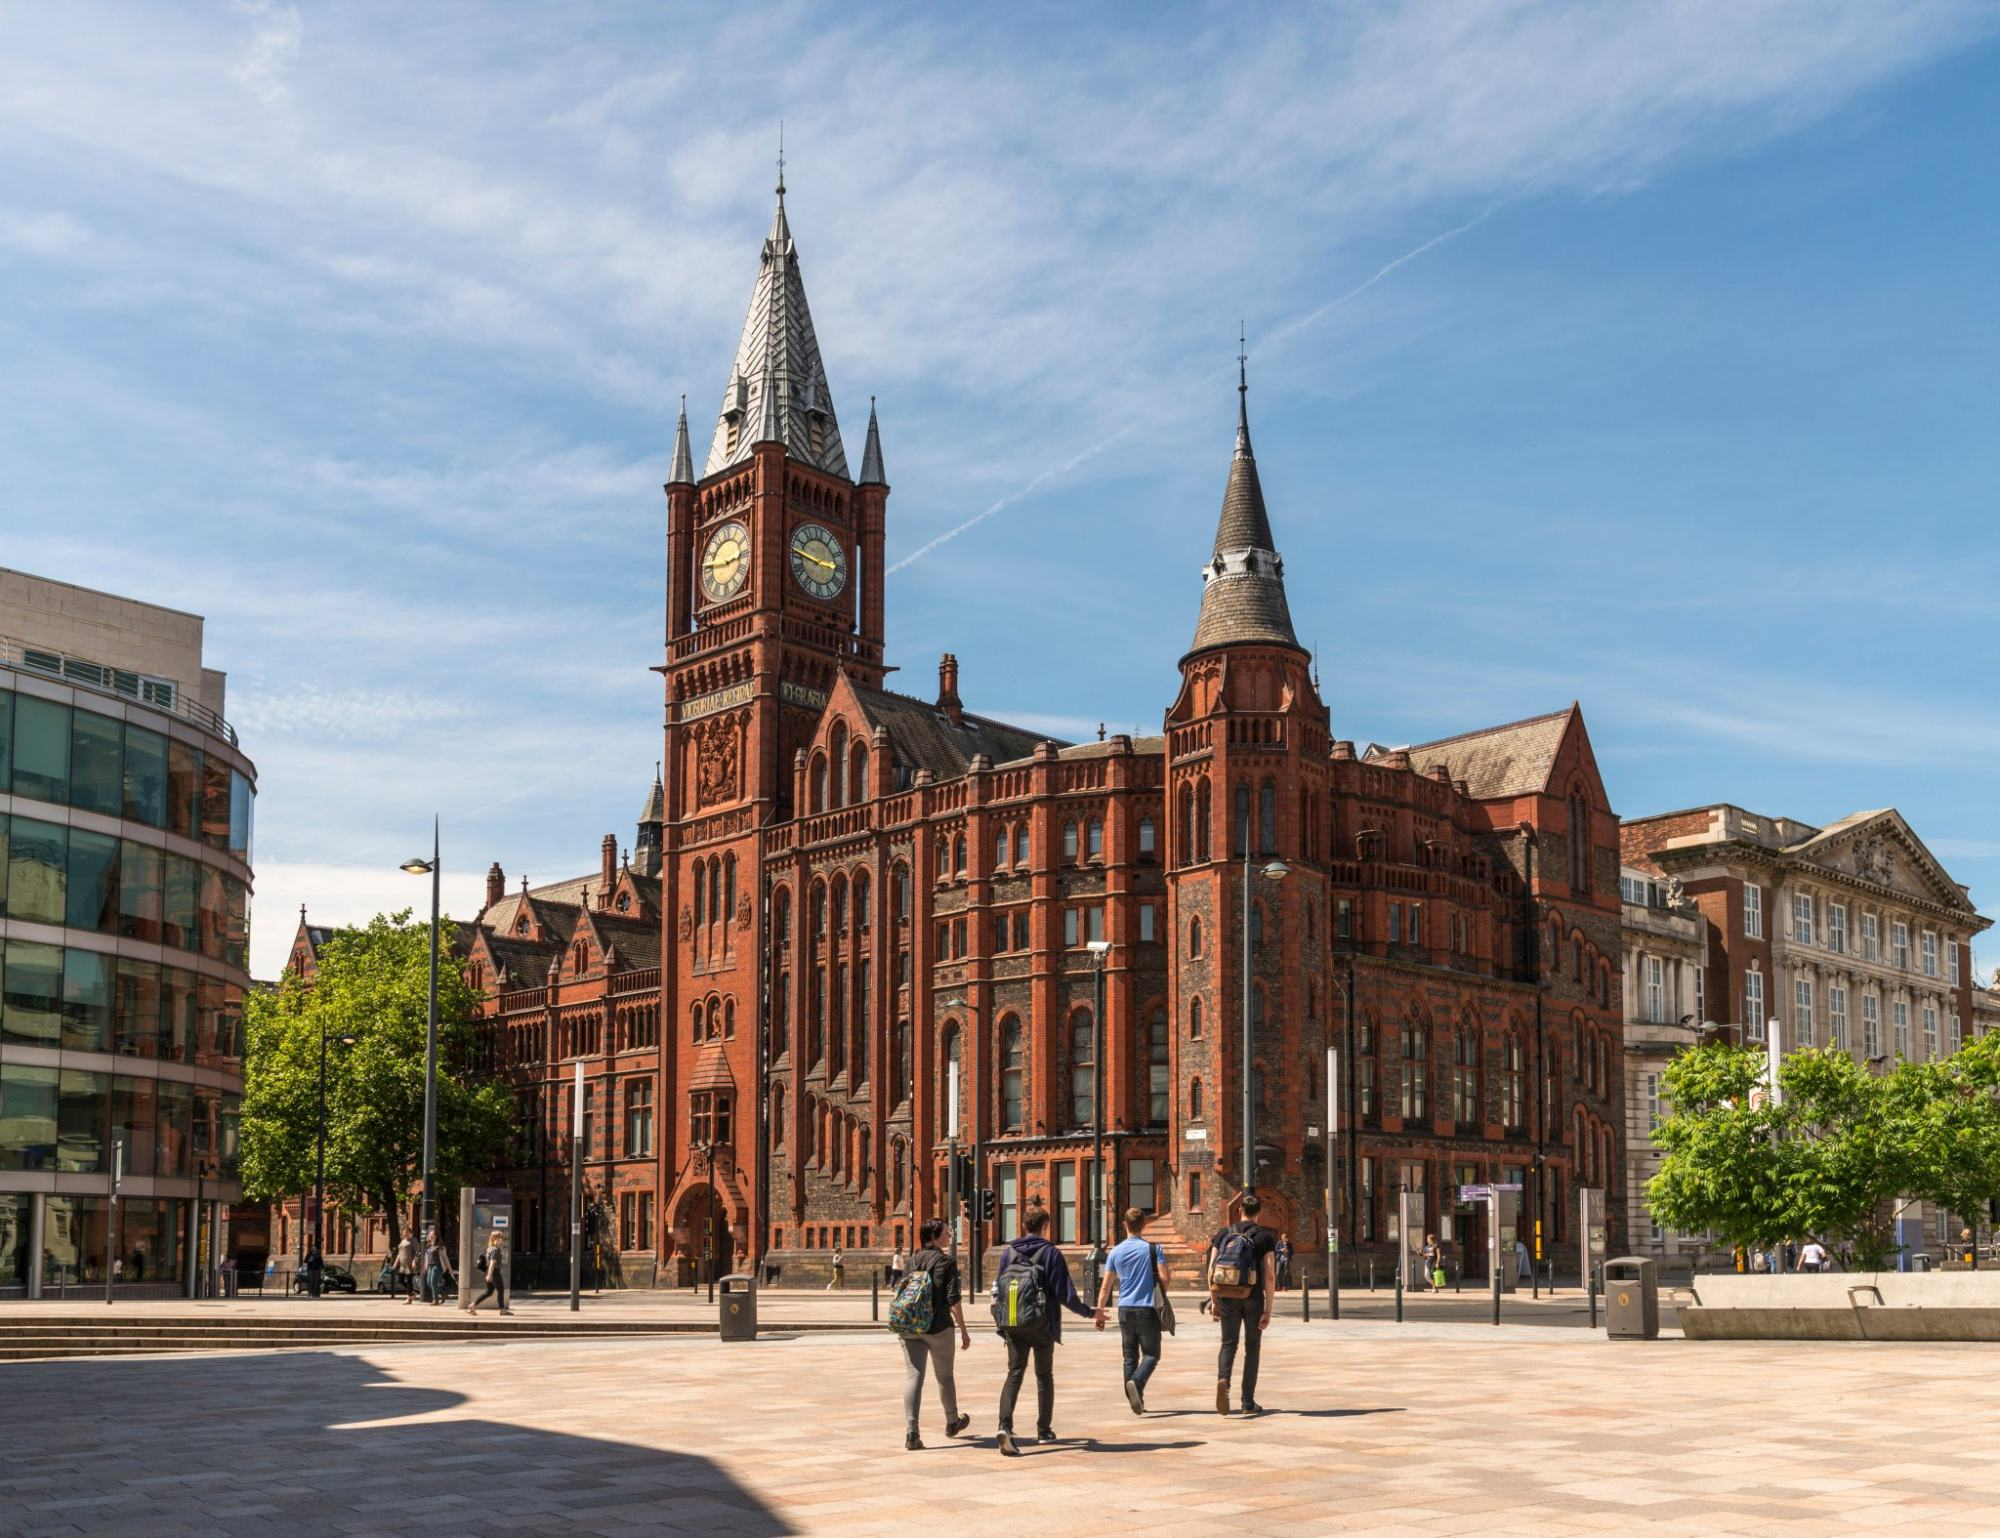 The University of Liverpool's master's degree course on The Beatles will explore the cultural impact of the Fab Four. Photo: University of Liverpool/The Beatles Story/Red Door News Hong Kong